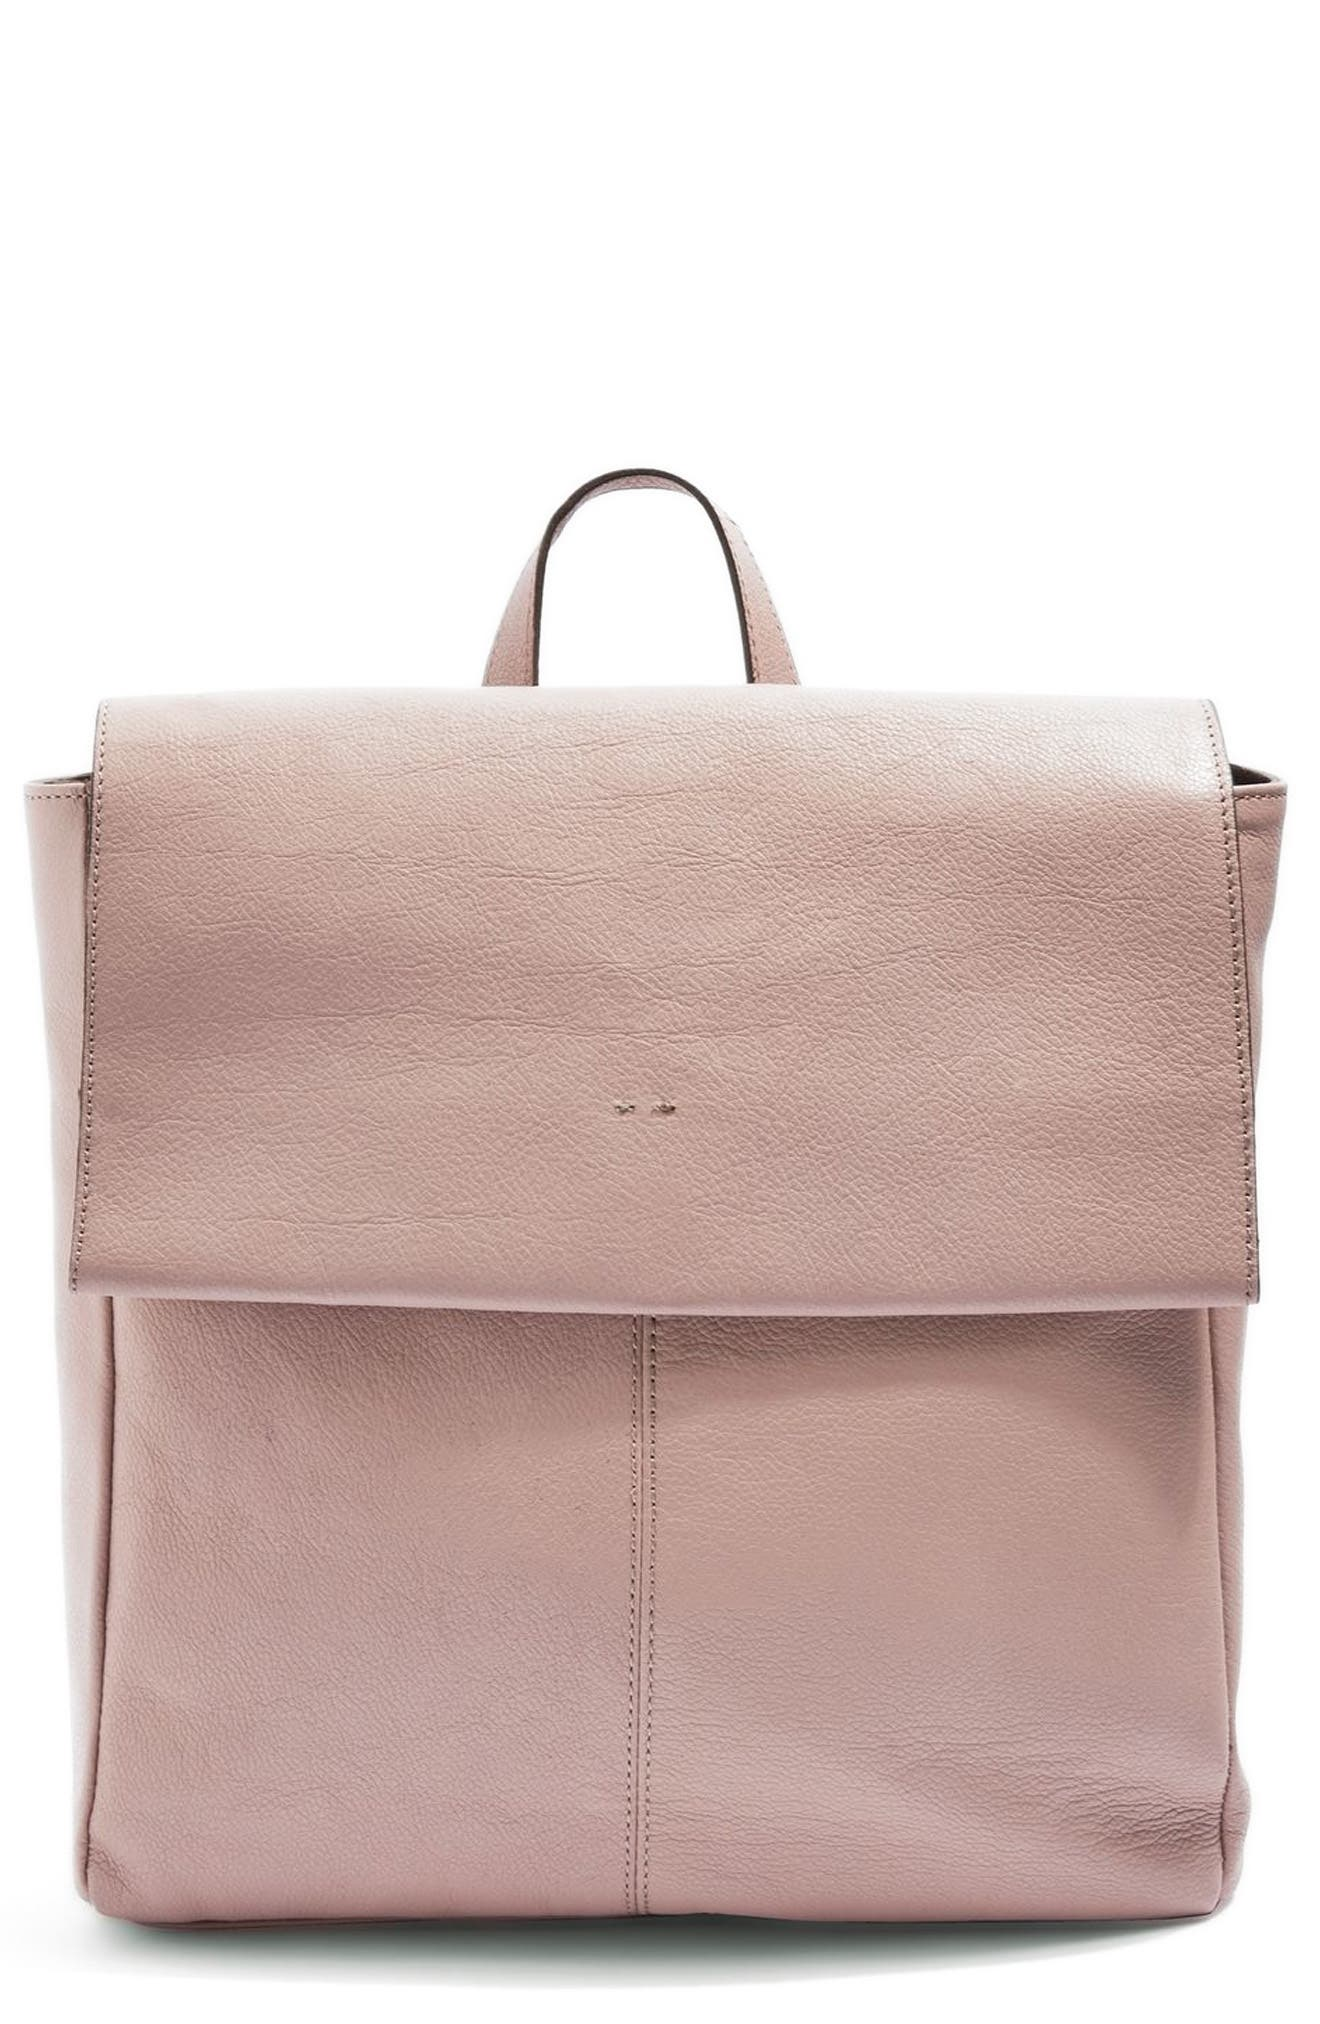 Topshop Premium Leather Calfskin Backpack